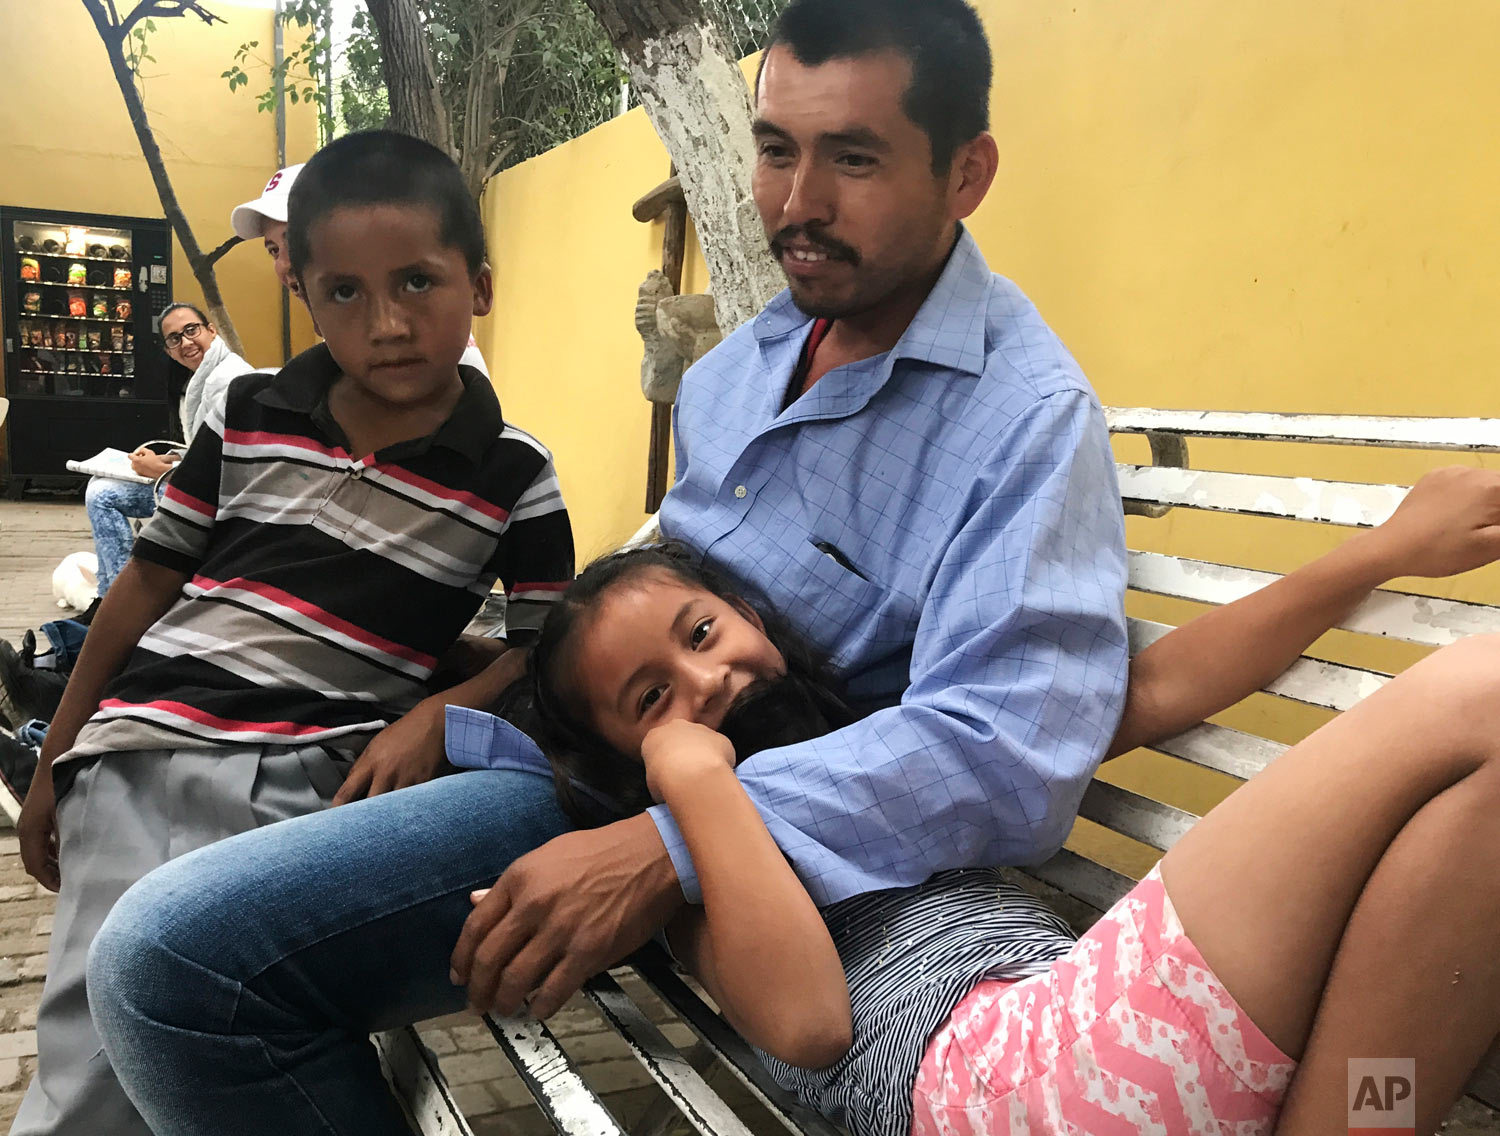 A father waits with his daughter and son in Piedras Negras, Mexico, as they seek asylum in the U.S., March 27, 2019. (AP Photo/Nomaan Merchant)